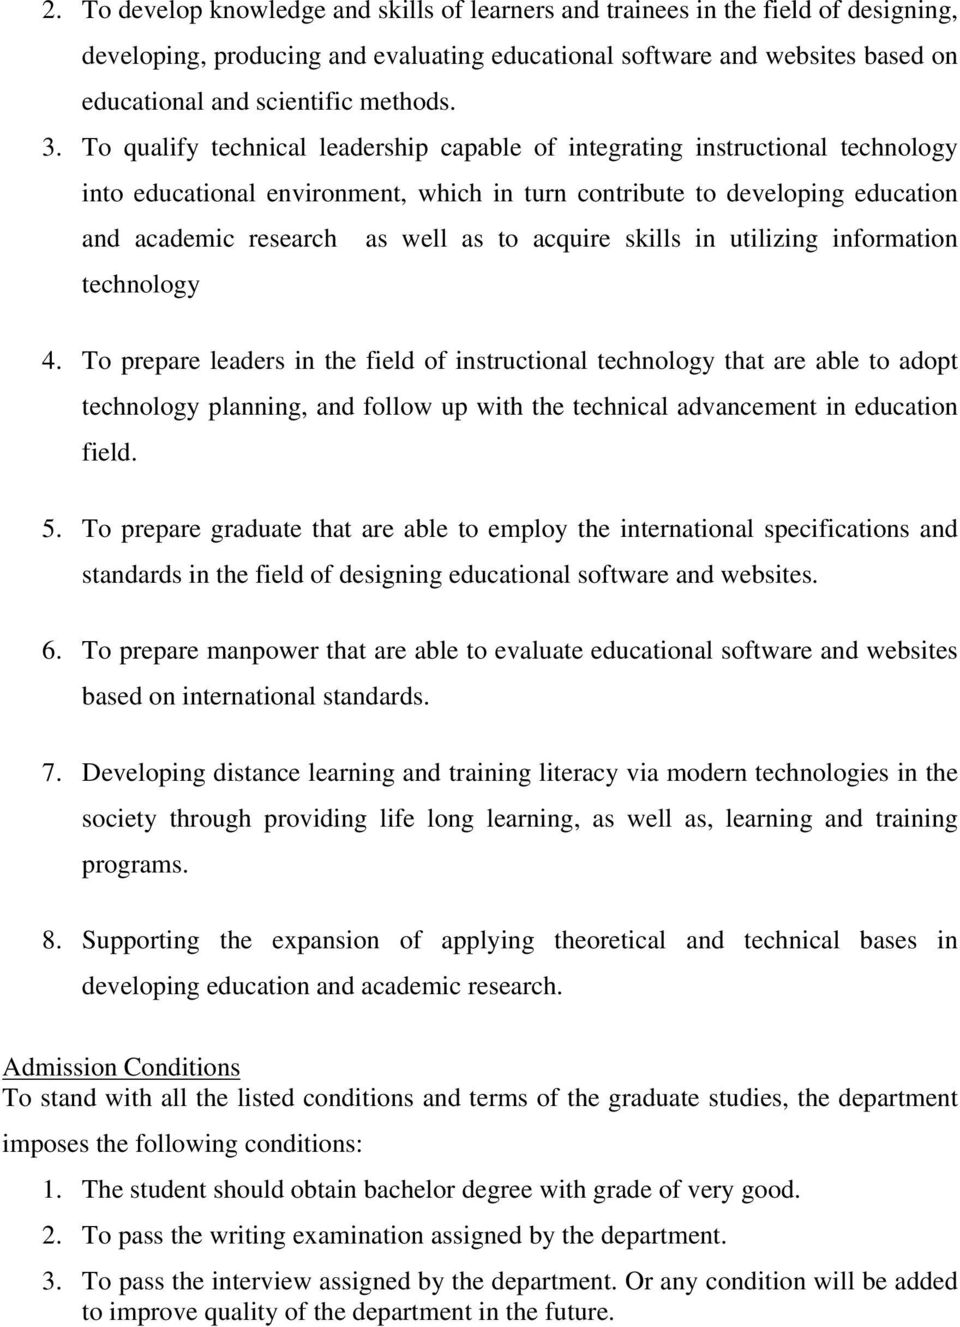 To qualify technical leadership capable of integrating instructional technology into educational environment, which in turn contribute to developing education and academic research as well as to